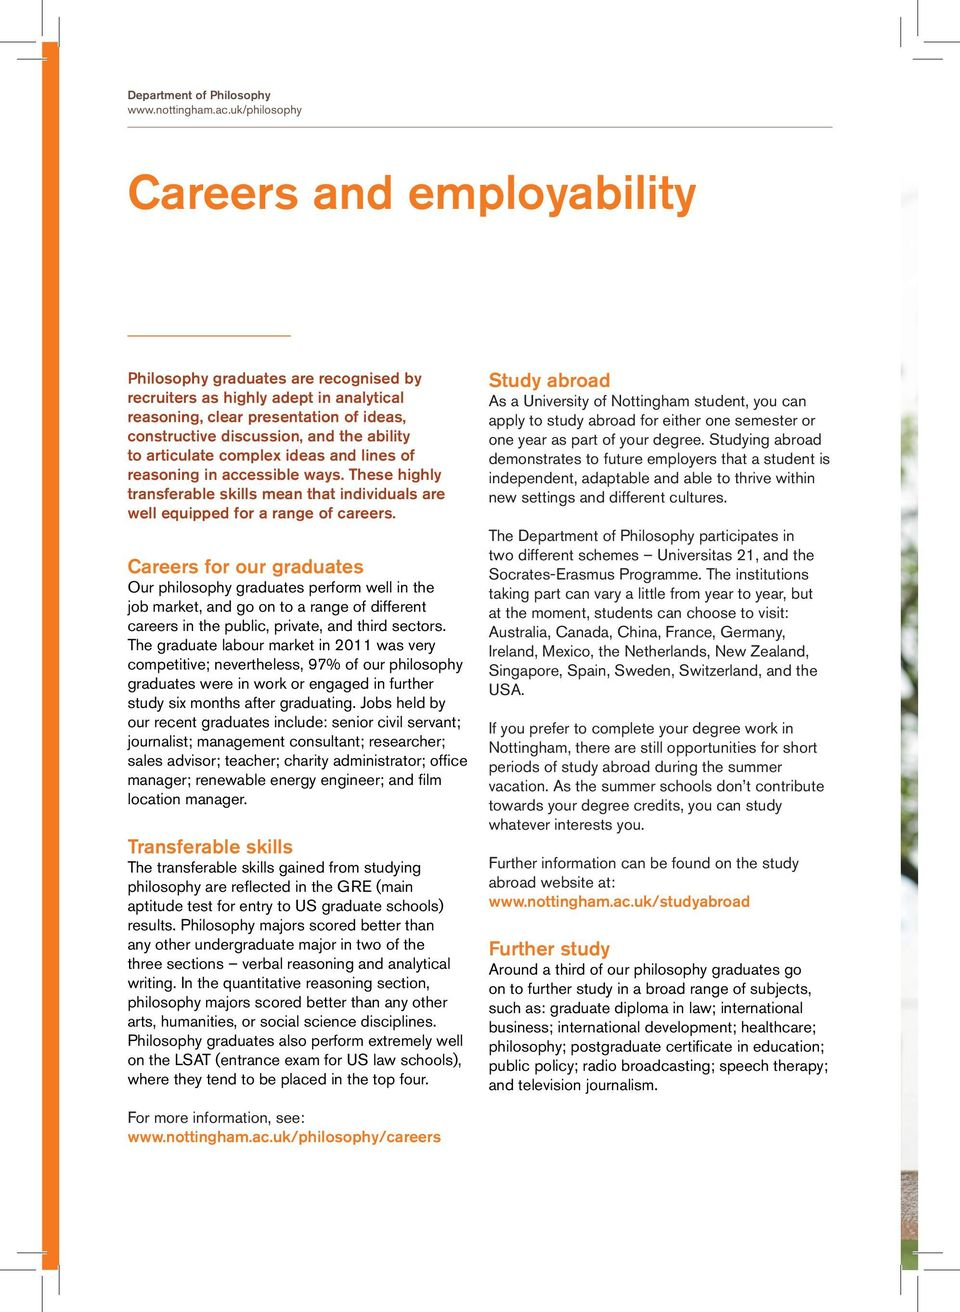 Careers for our graduates Our philosophy graduates perform well in the job market, and go on to a range of different careers in the public, private, and third sectors.